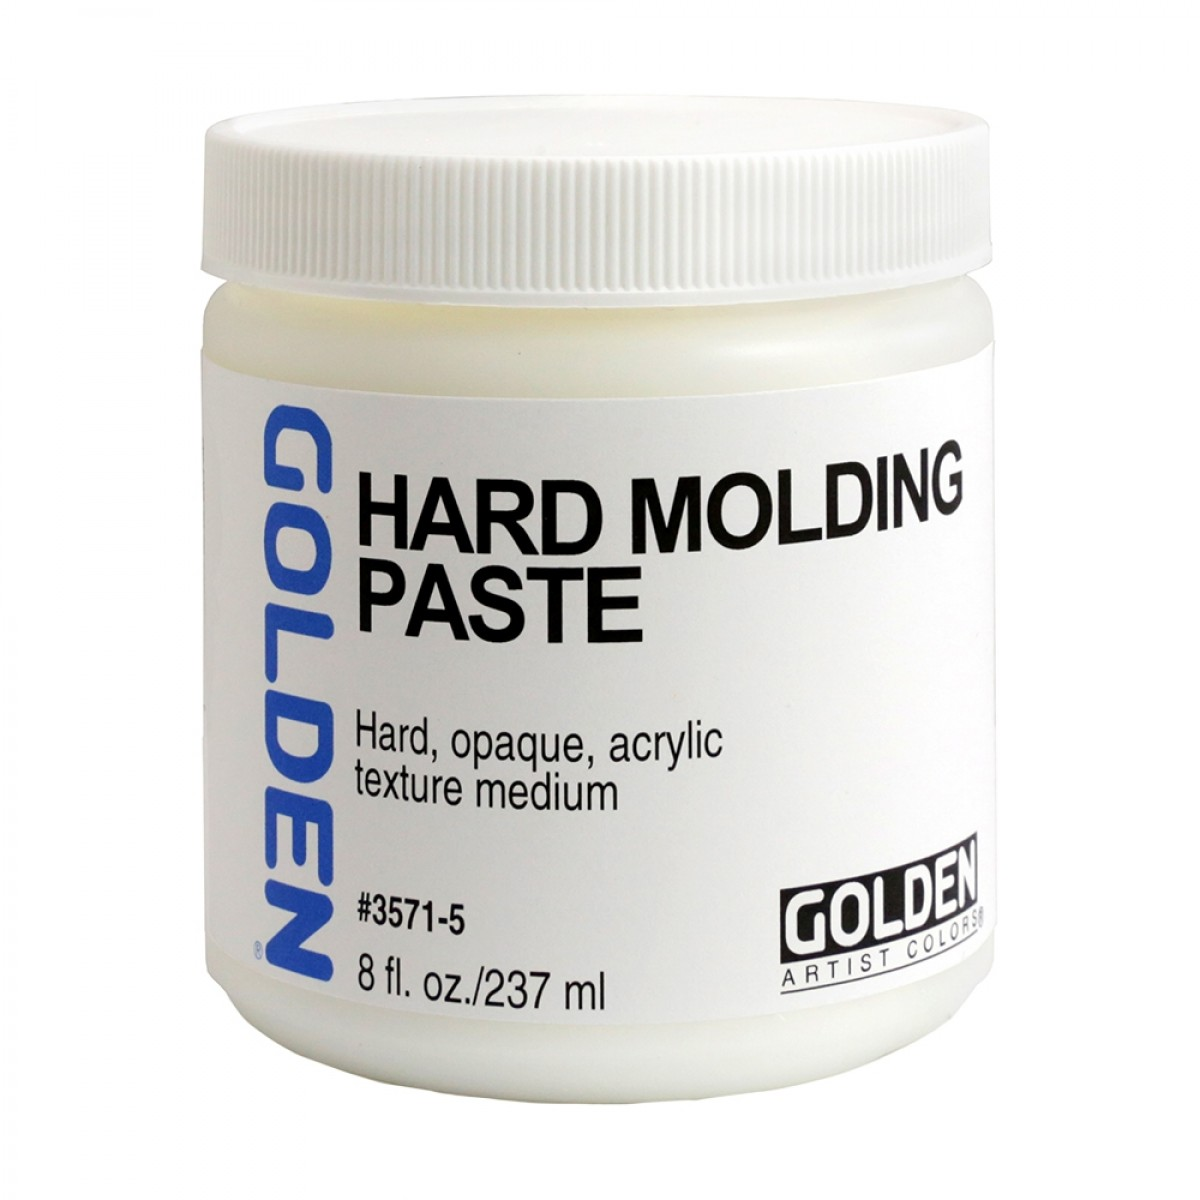 GOLDEN Hard Molding Paste, 237 ml